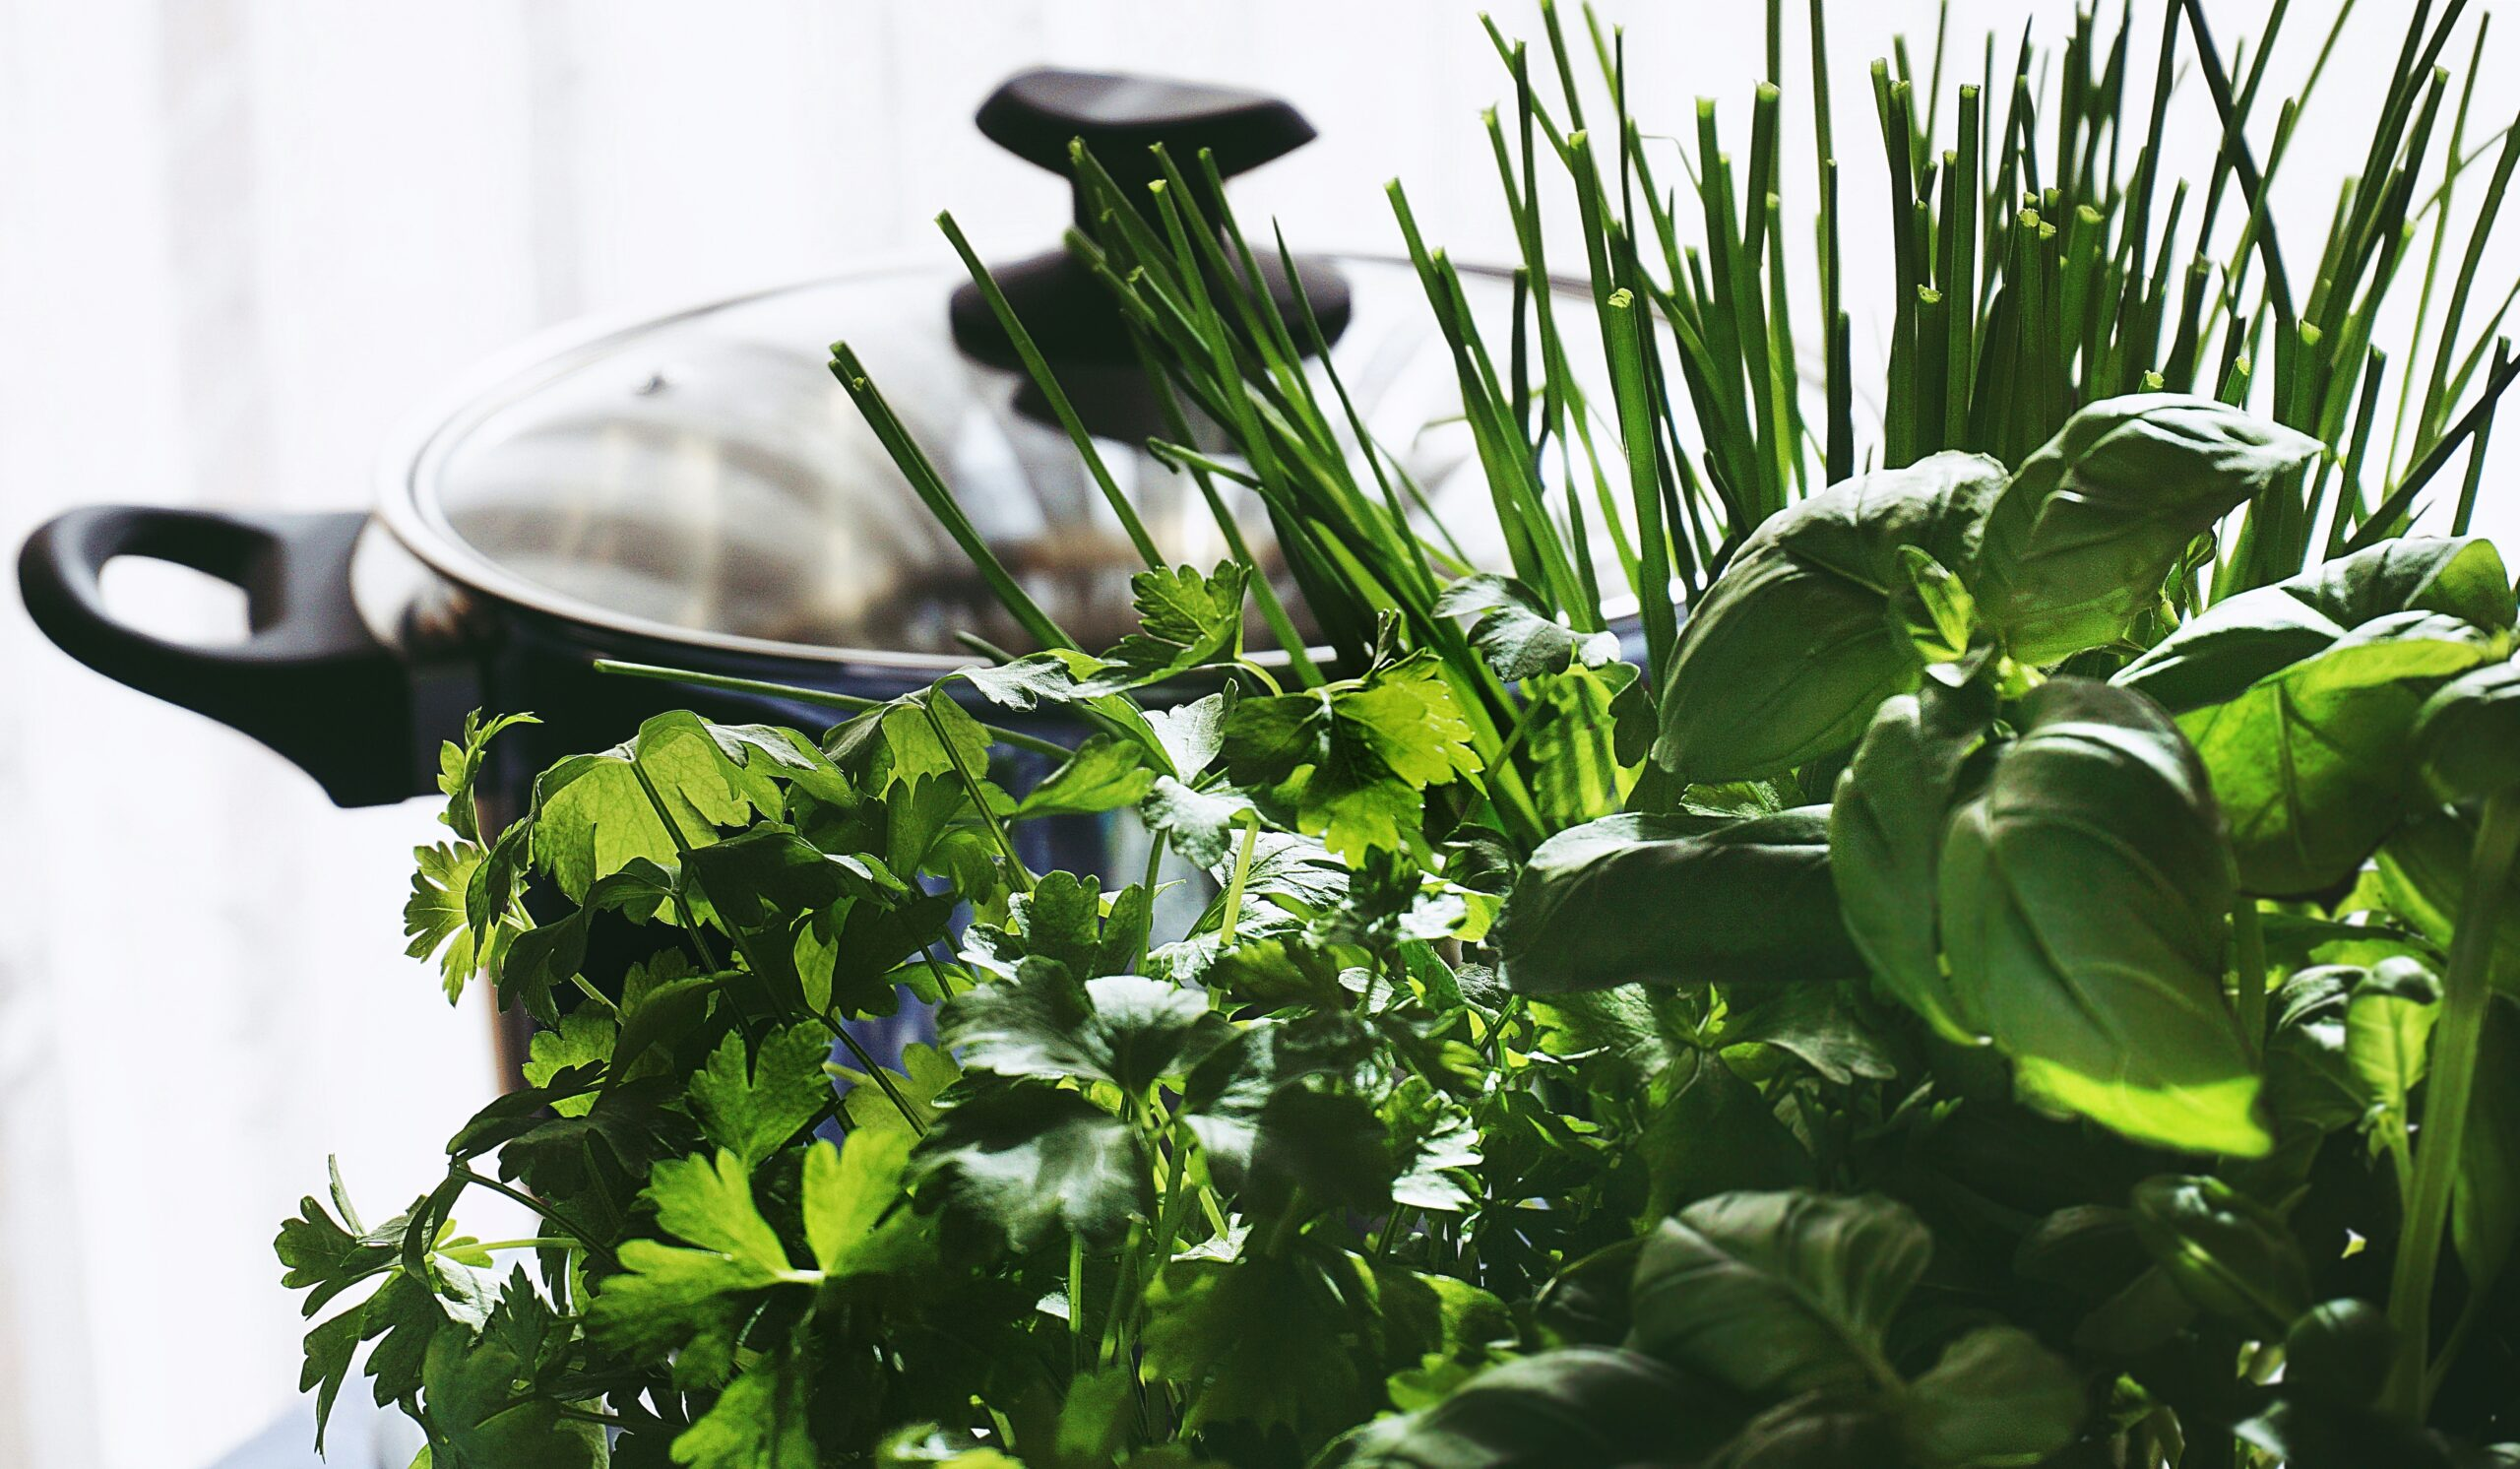 Cooking pot alongside herbs and greens